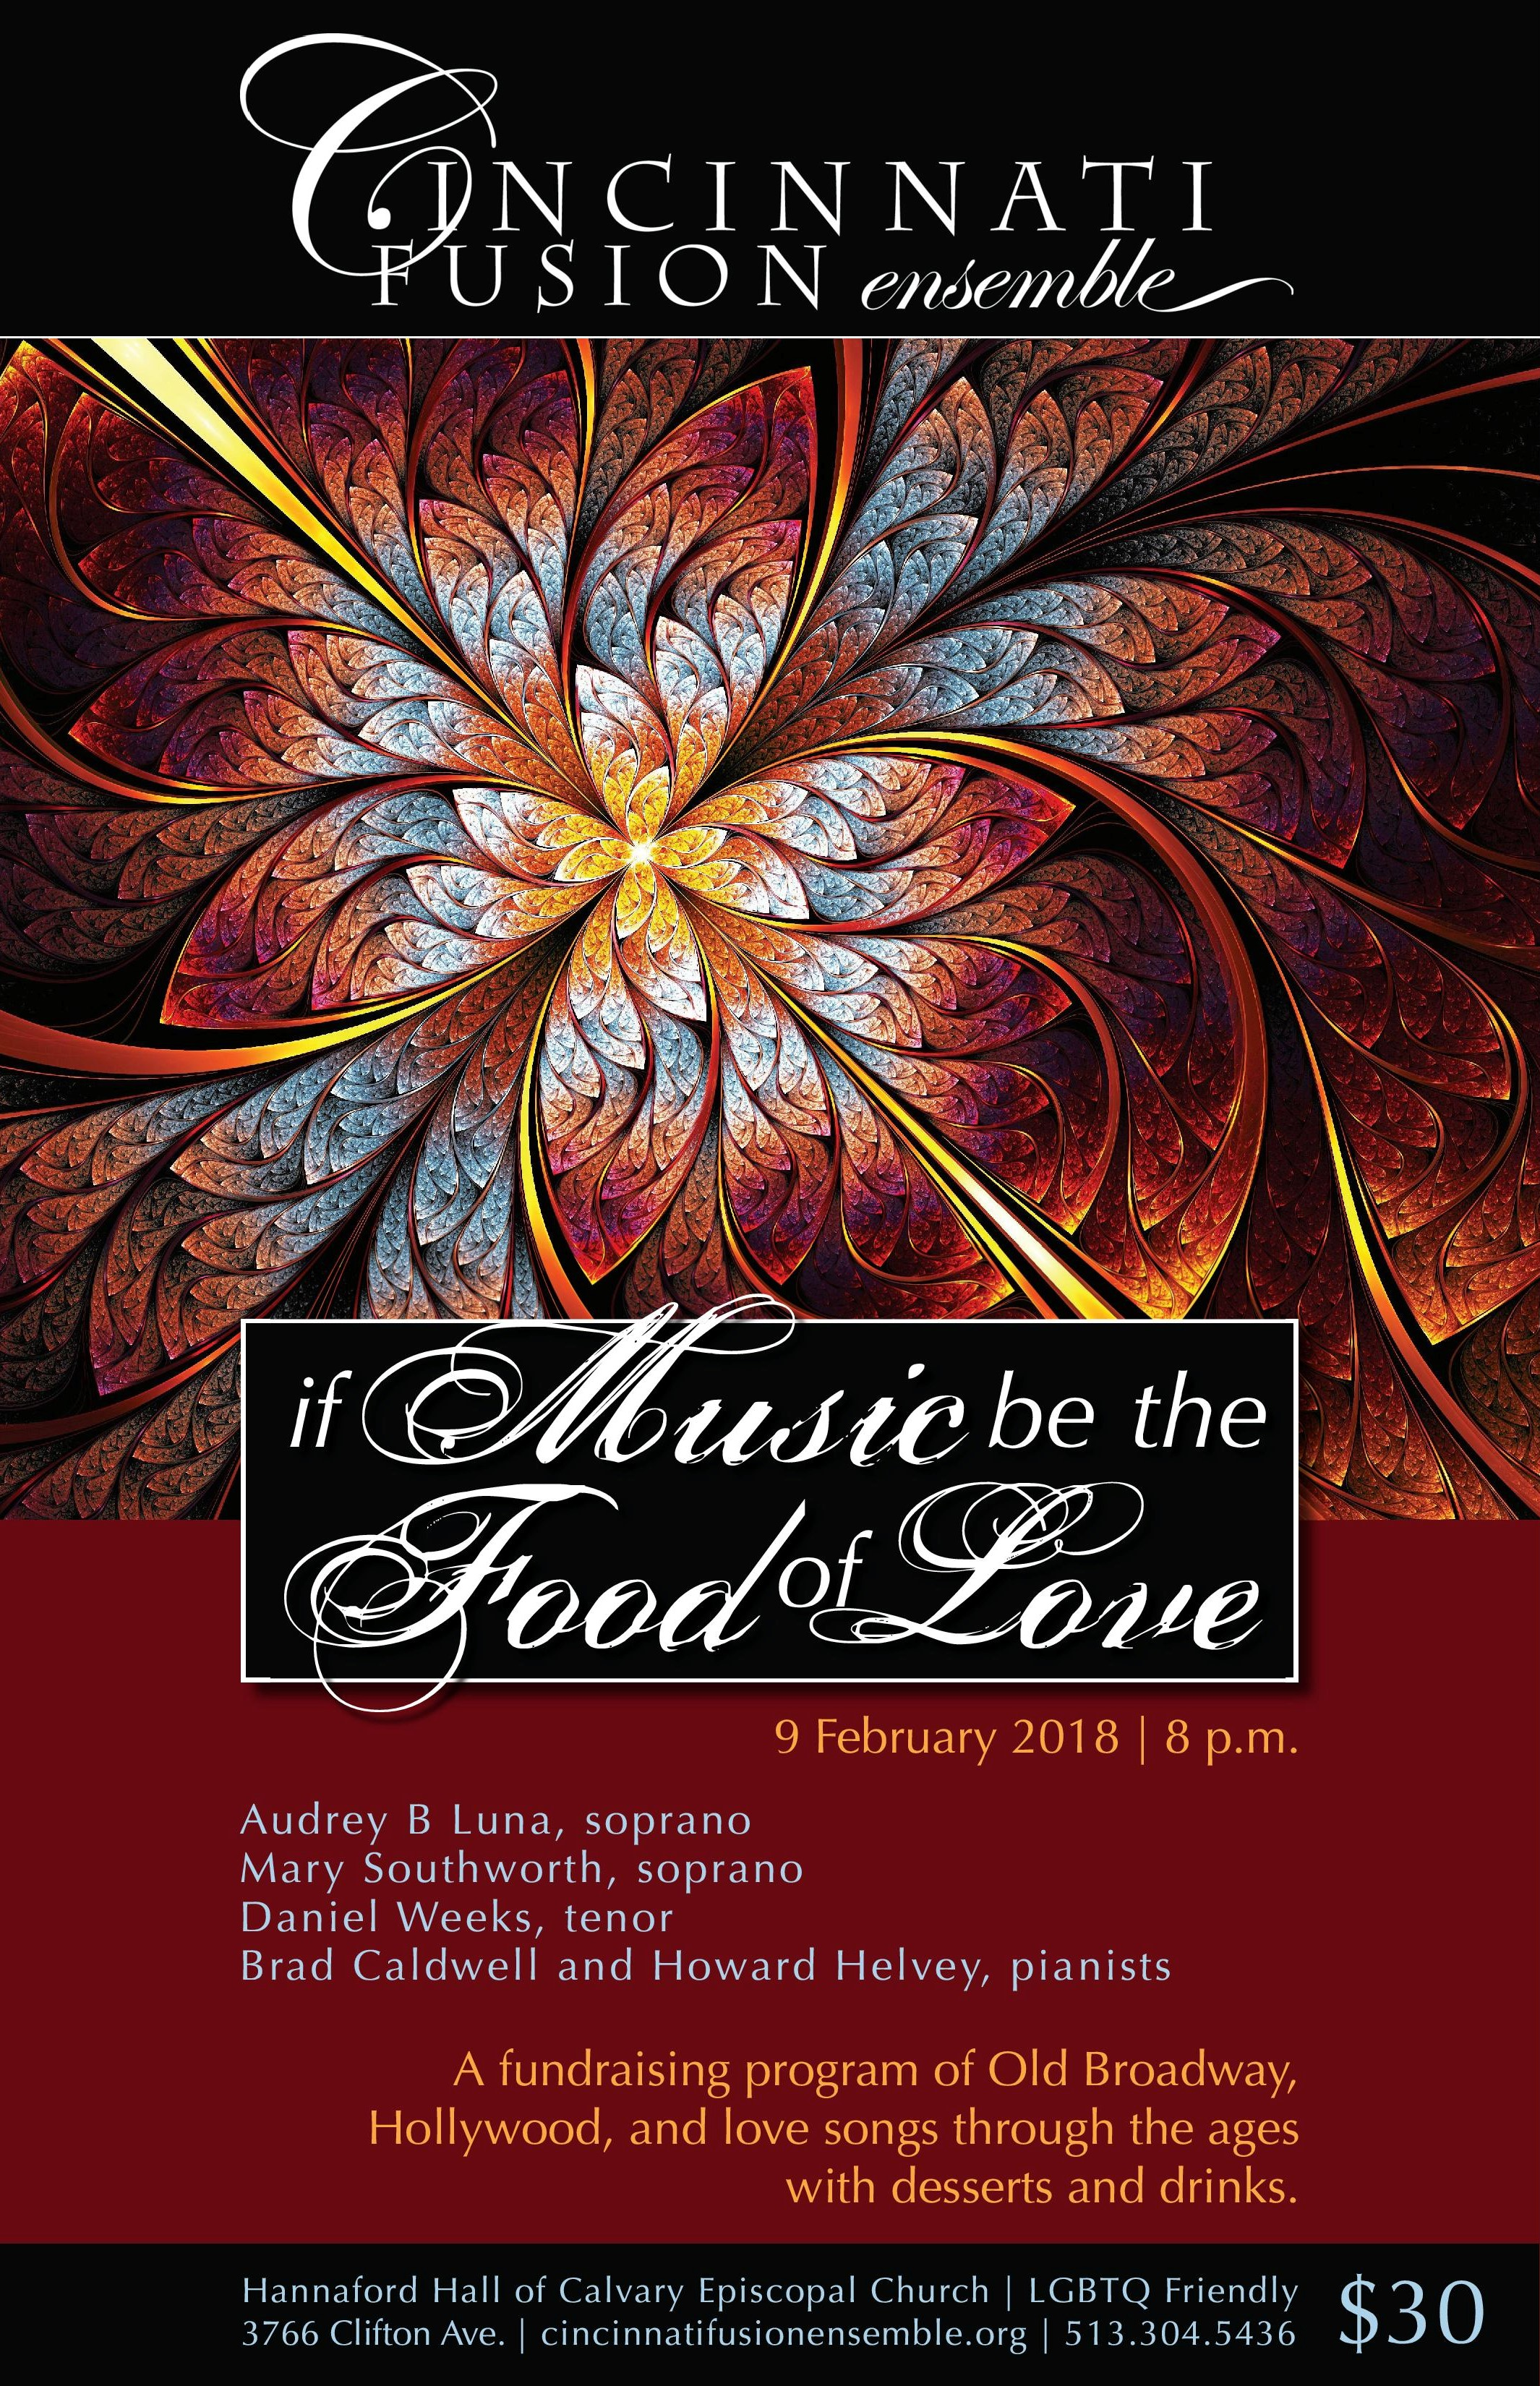 - Many of you have attended this Cincinnati Fusion Ensemble fundraiser in the past, and we are grateful! An RSVP (bectn@aol.com or text/voicemail to 513-304-4536) is helpful, but not necessary. We hope you'll join us for this fun evening on Friday, February 9, at 8 PM!Calvary Episcopal Church3766 Clifton AveCincinnati OH 45220